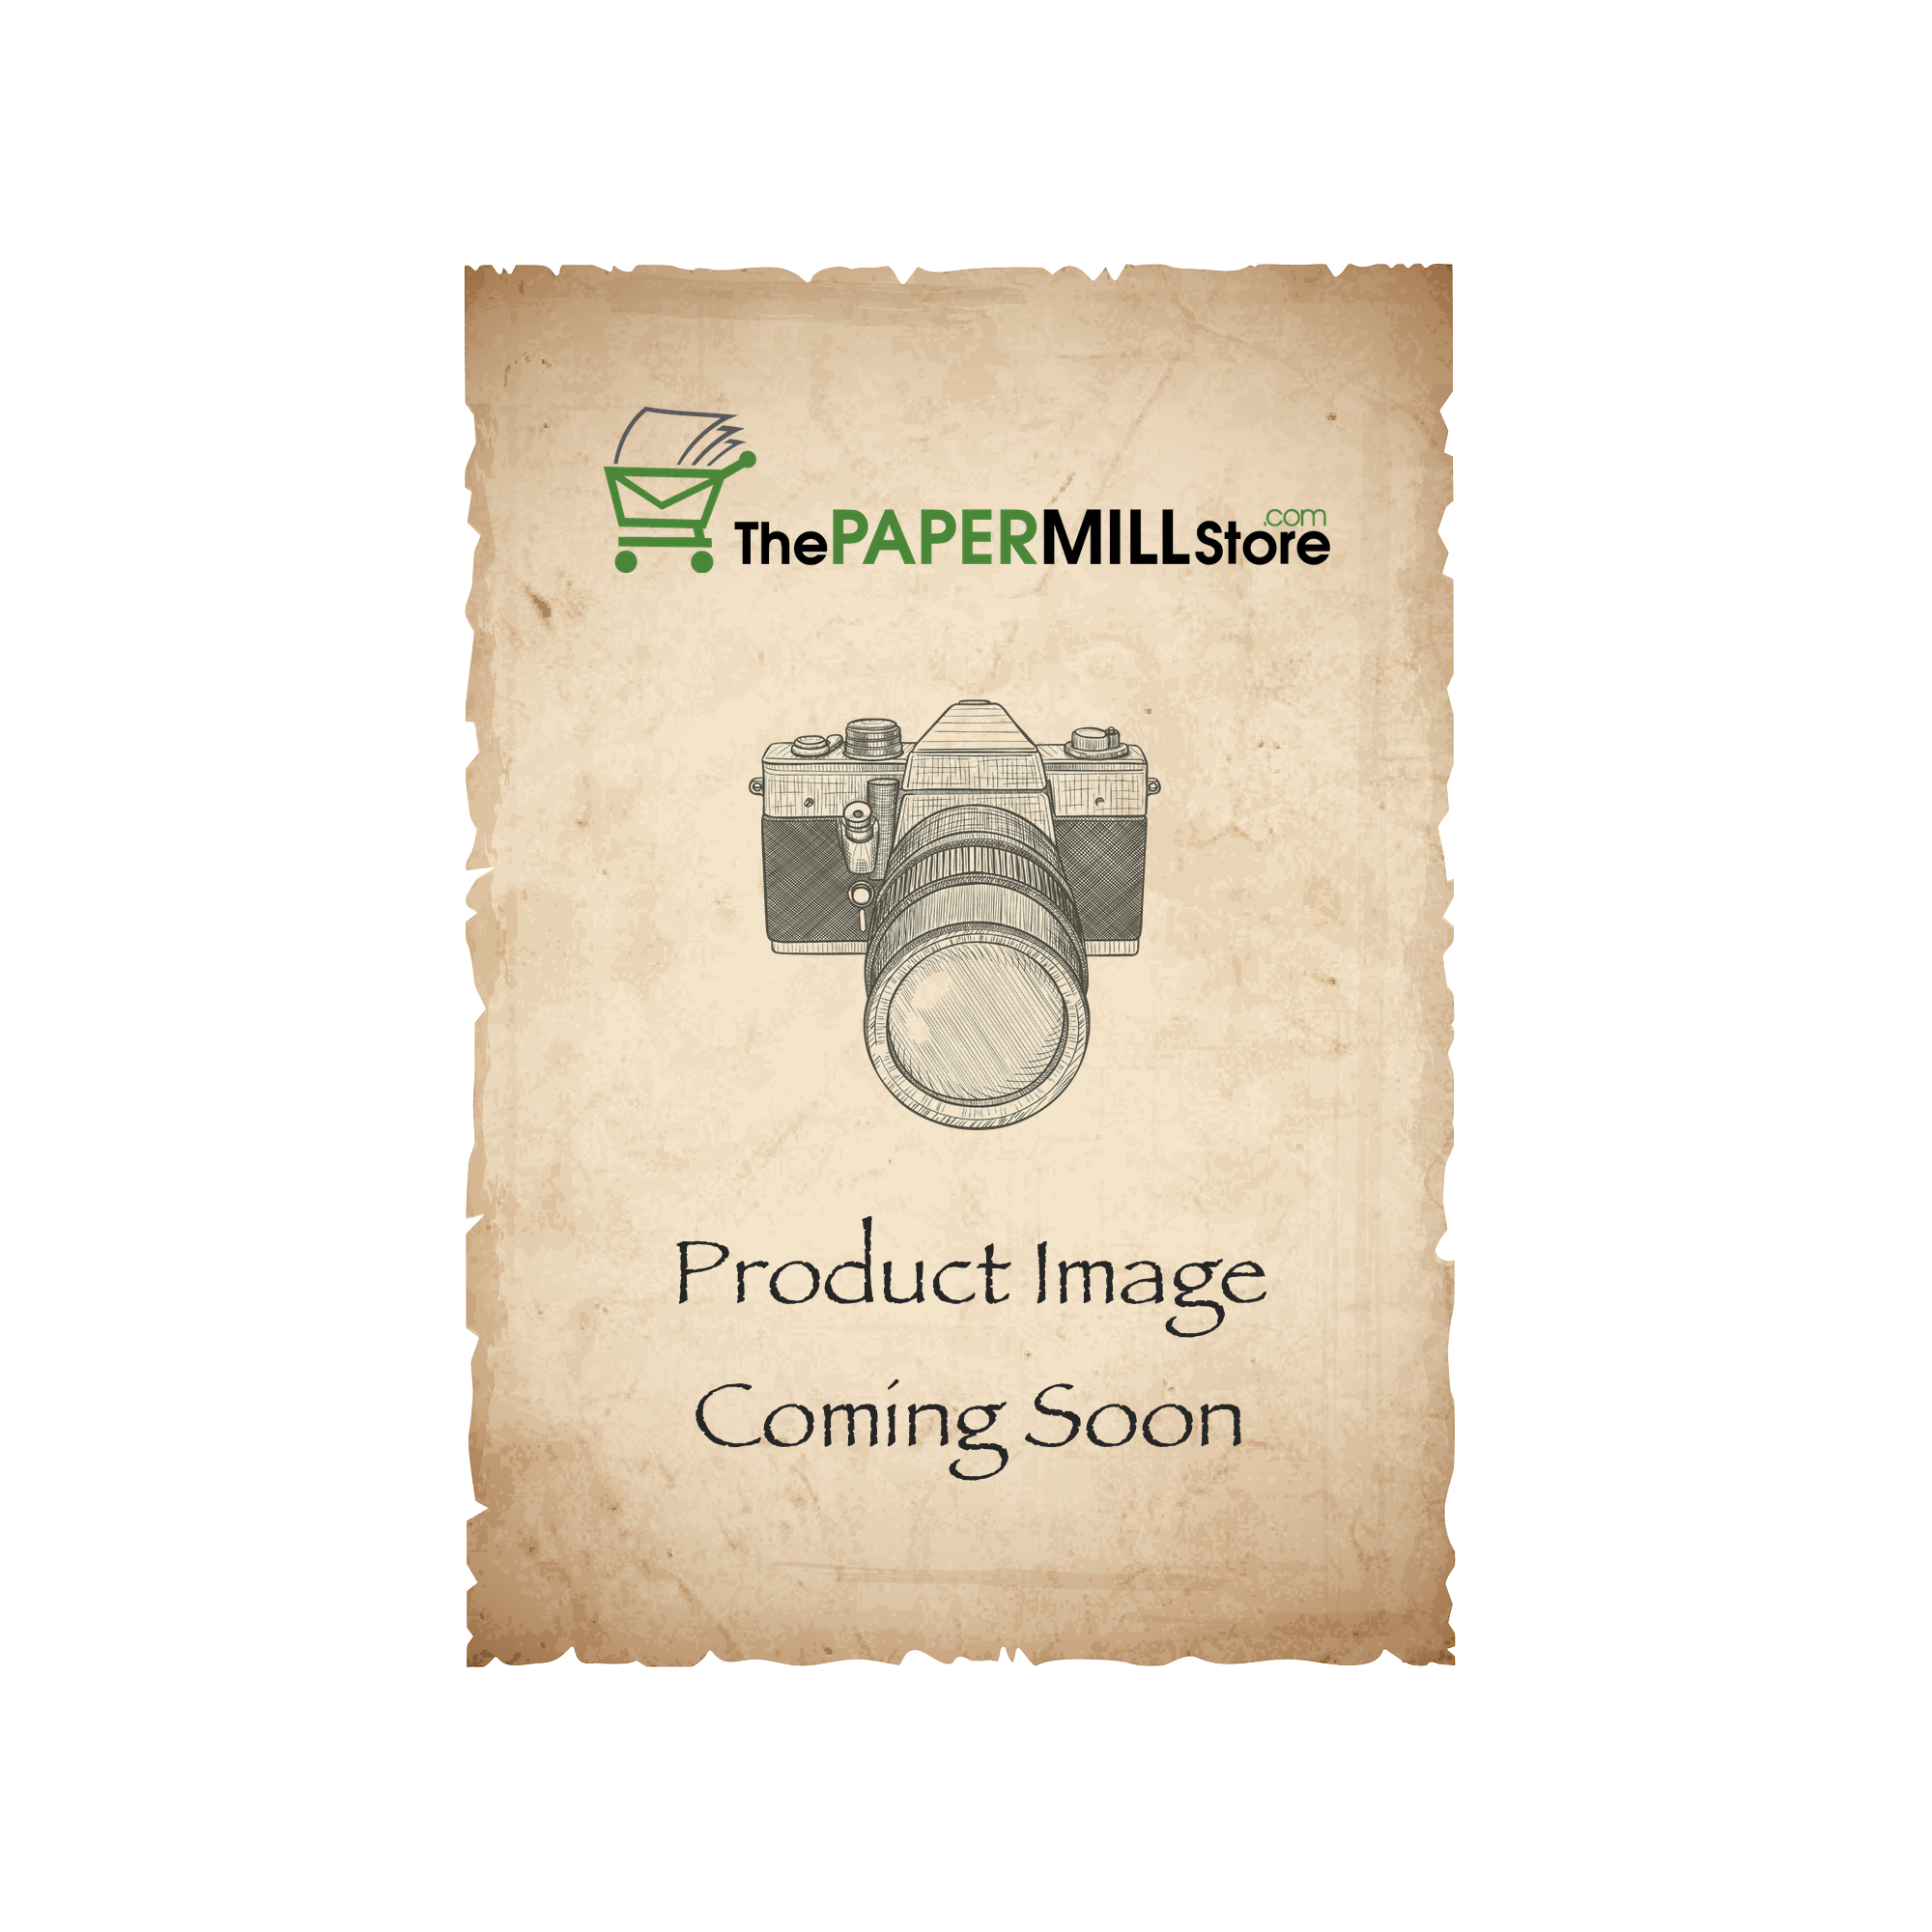 Via Linen Soft Cream Paper - 8 1/2 x 11 in 24 lb Writing Linen  30% Recycled Watermarked 500 per Ream